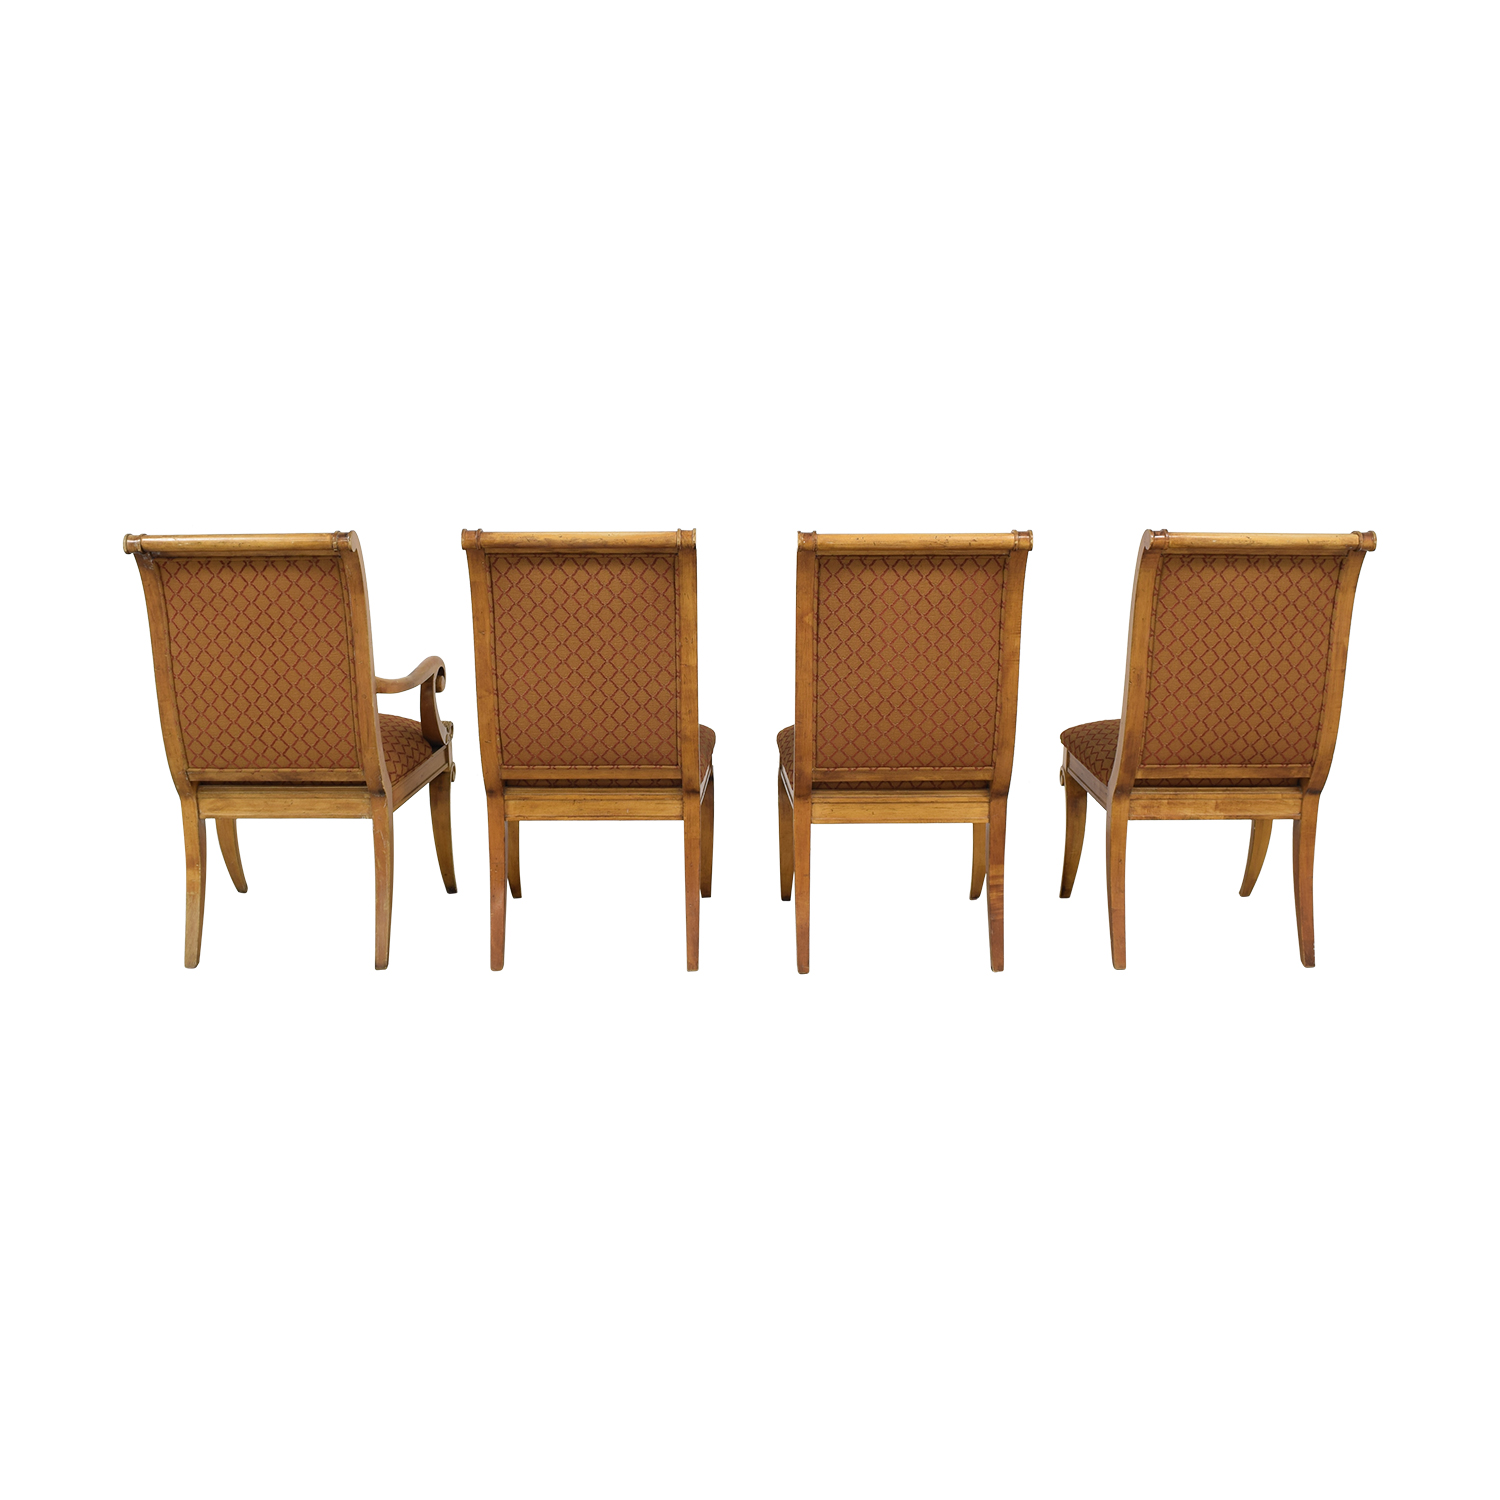 Century Furniture Century Furniture Upholstered Dining Chairs ma